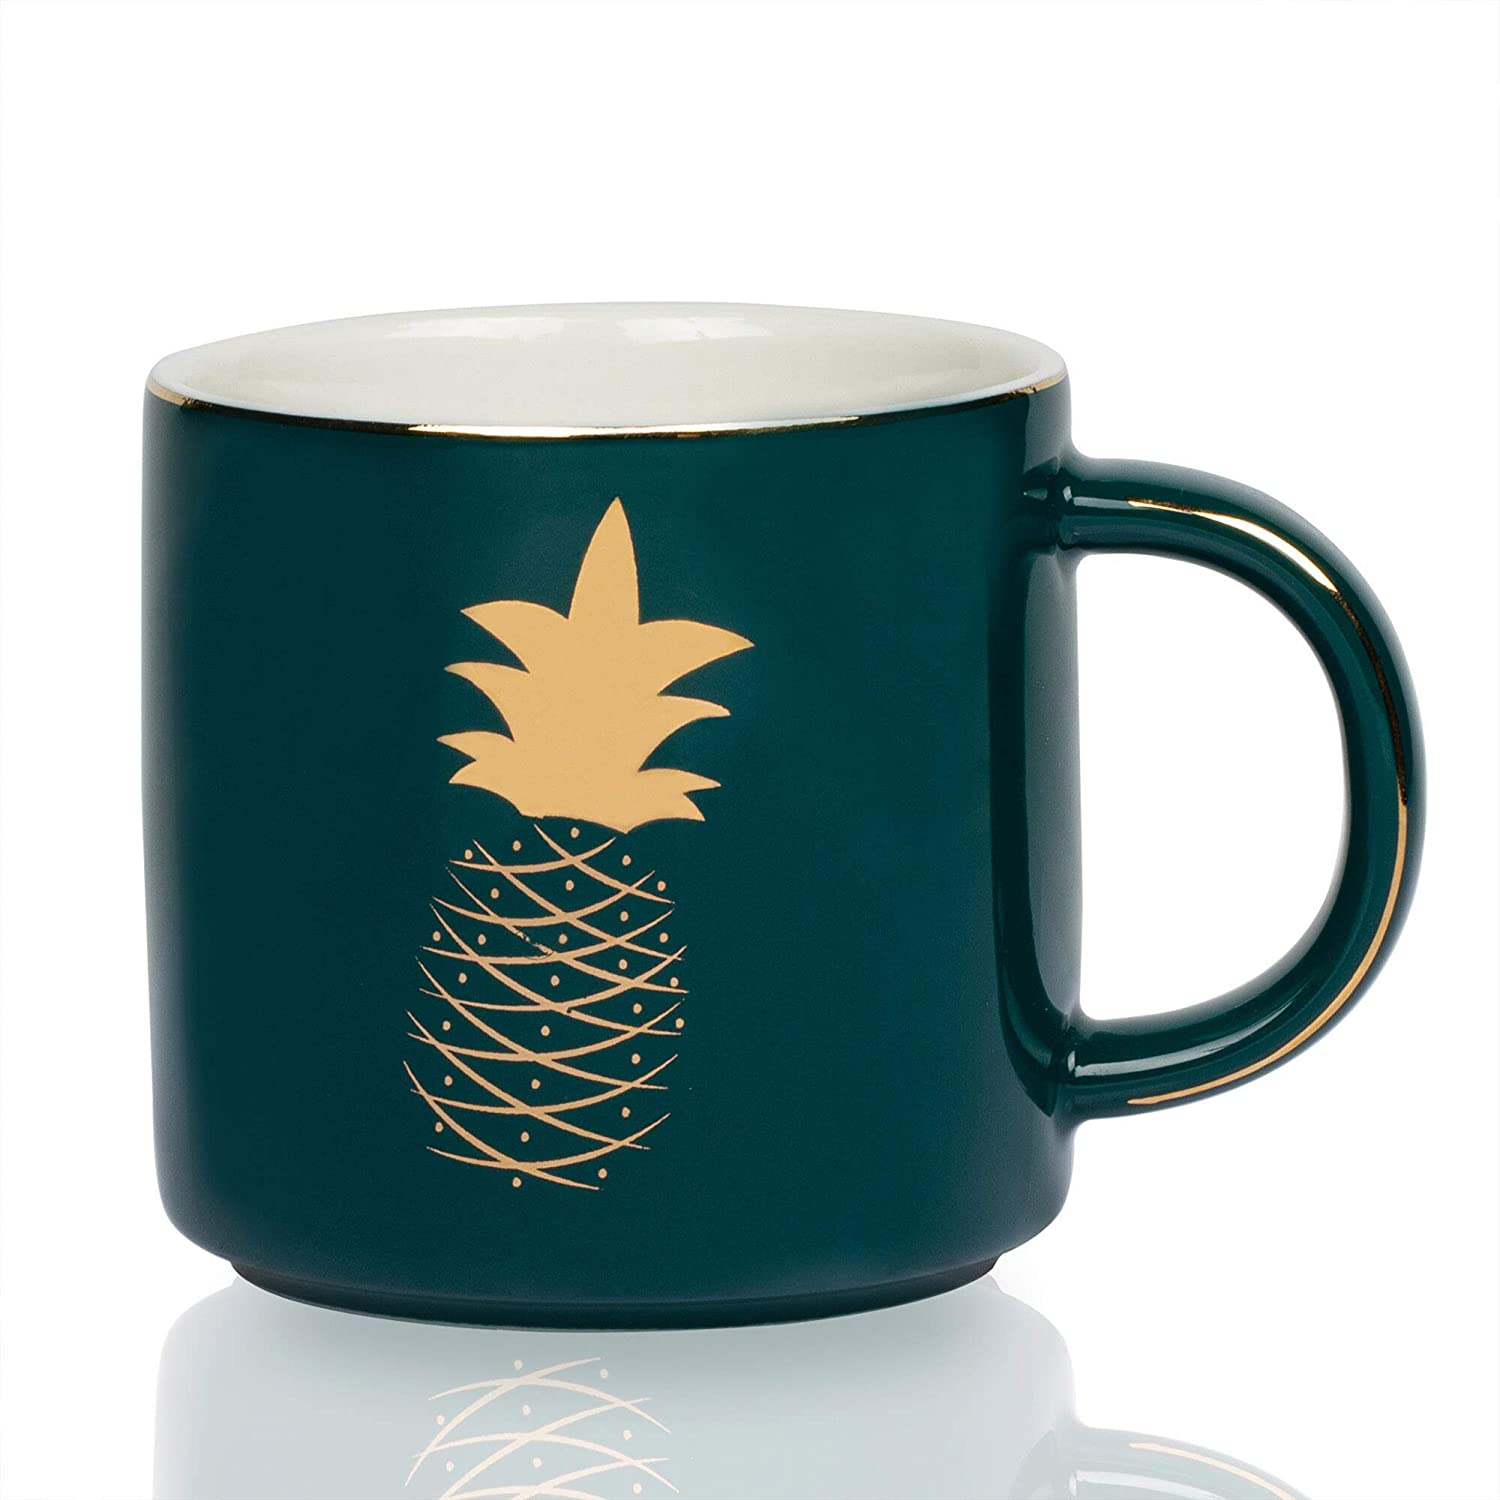 Onebttl Pineapple Coffee Mugs - Pineapple Drinking Cup - 12oz - Great Pineapple Gifts for Women, Sister, Girls or Teen - Dark Green